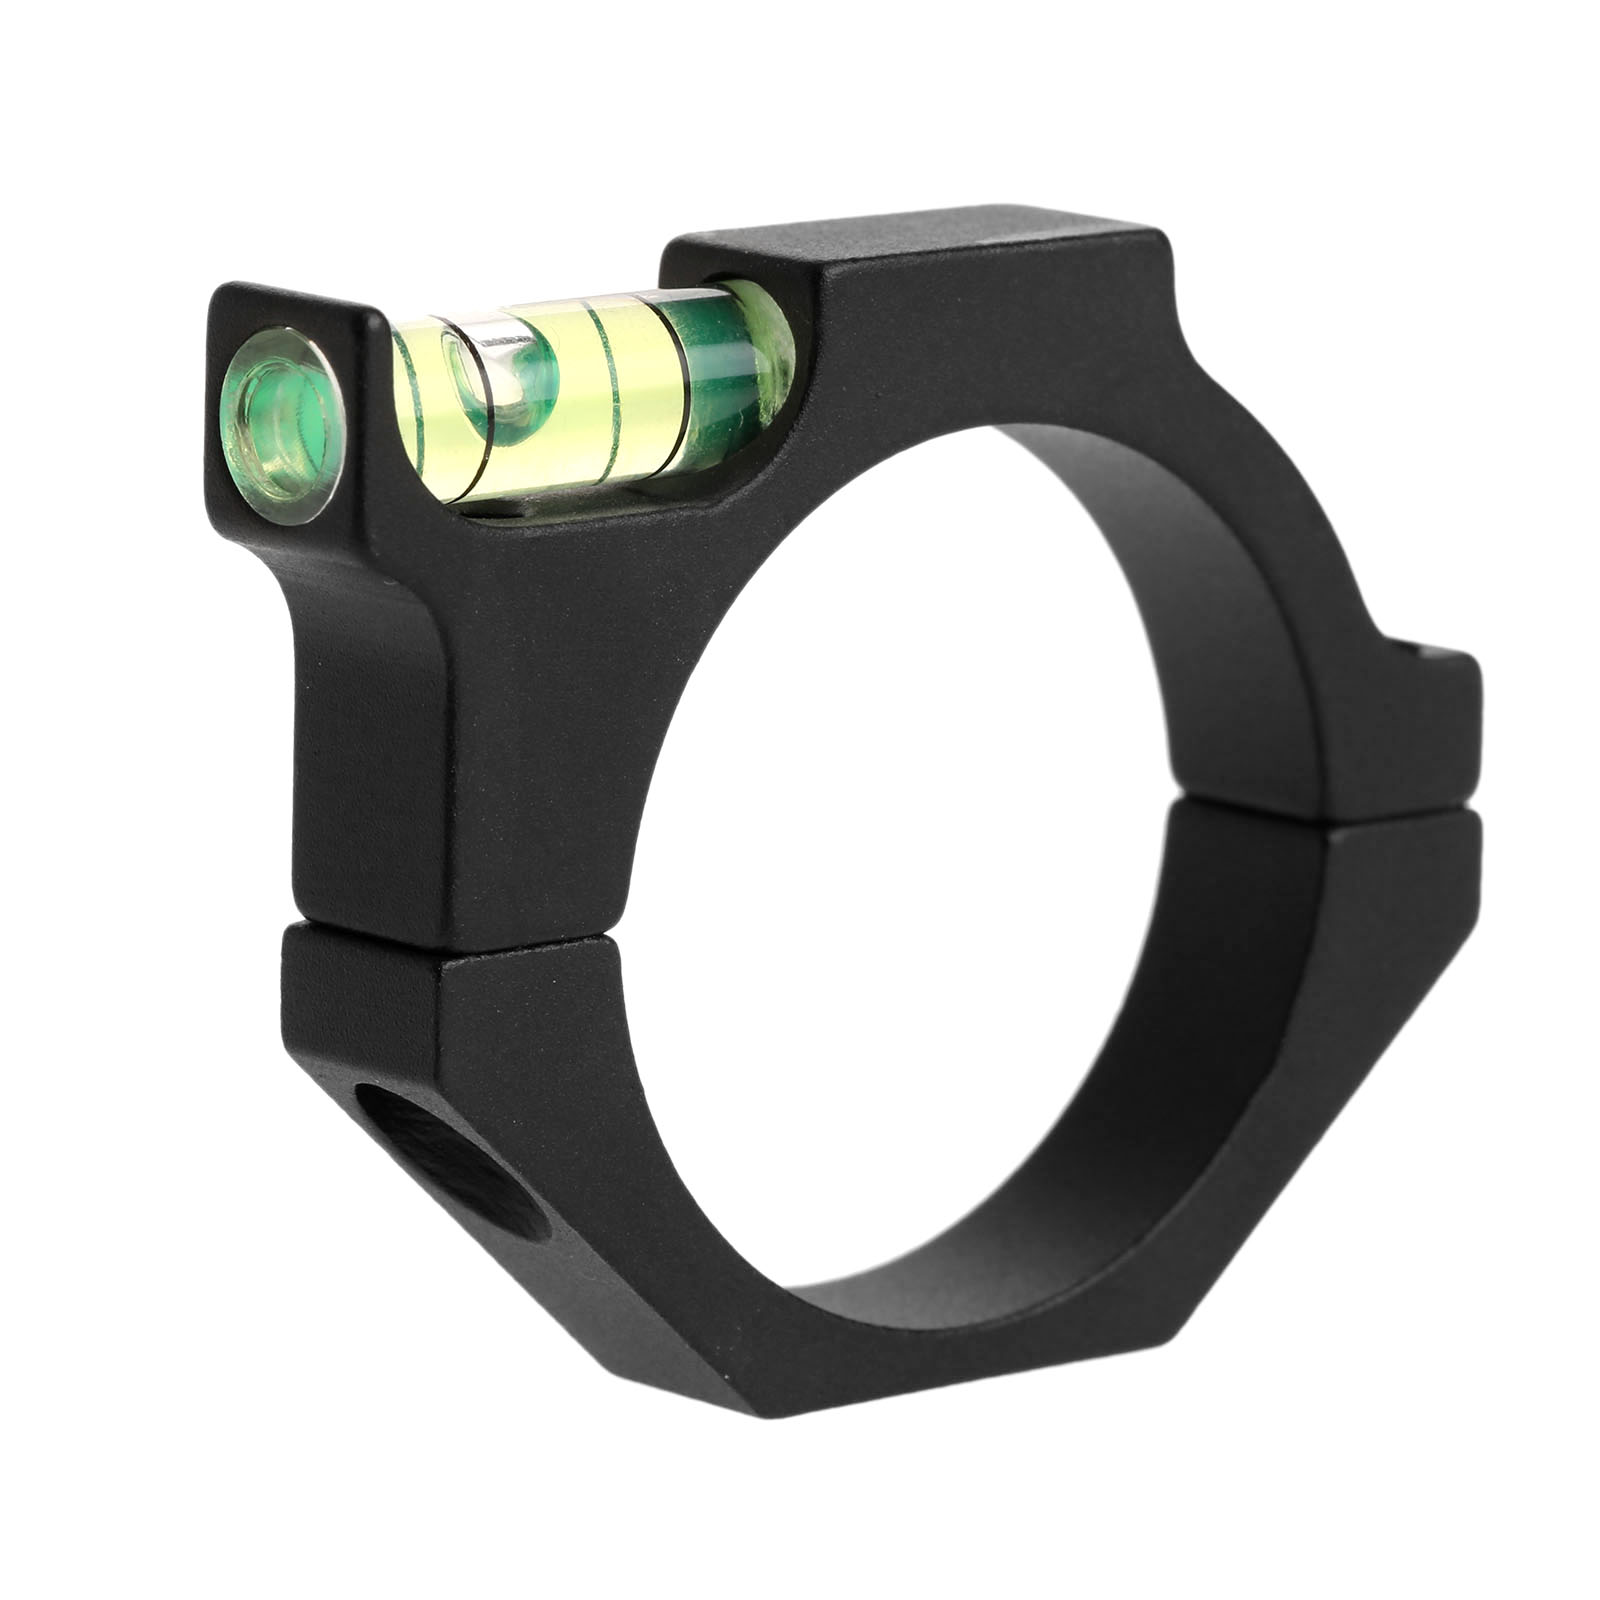 Metal Spirit Bubble Level For 30mm Rail Rifle Tube Riflescope Sight Scope Ring Mount Holder Hunting Tactical Optics Laser Sights